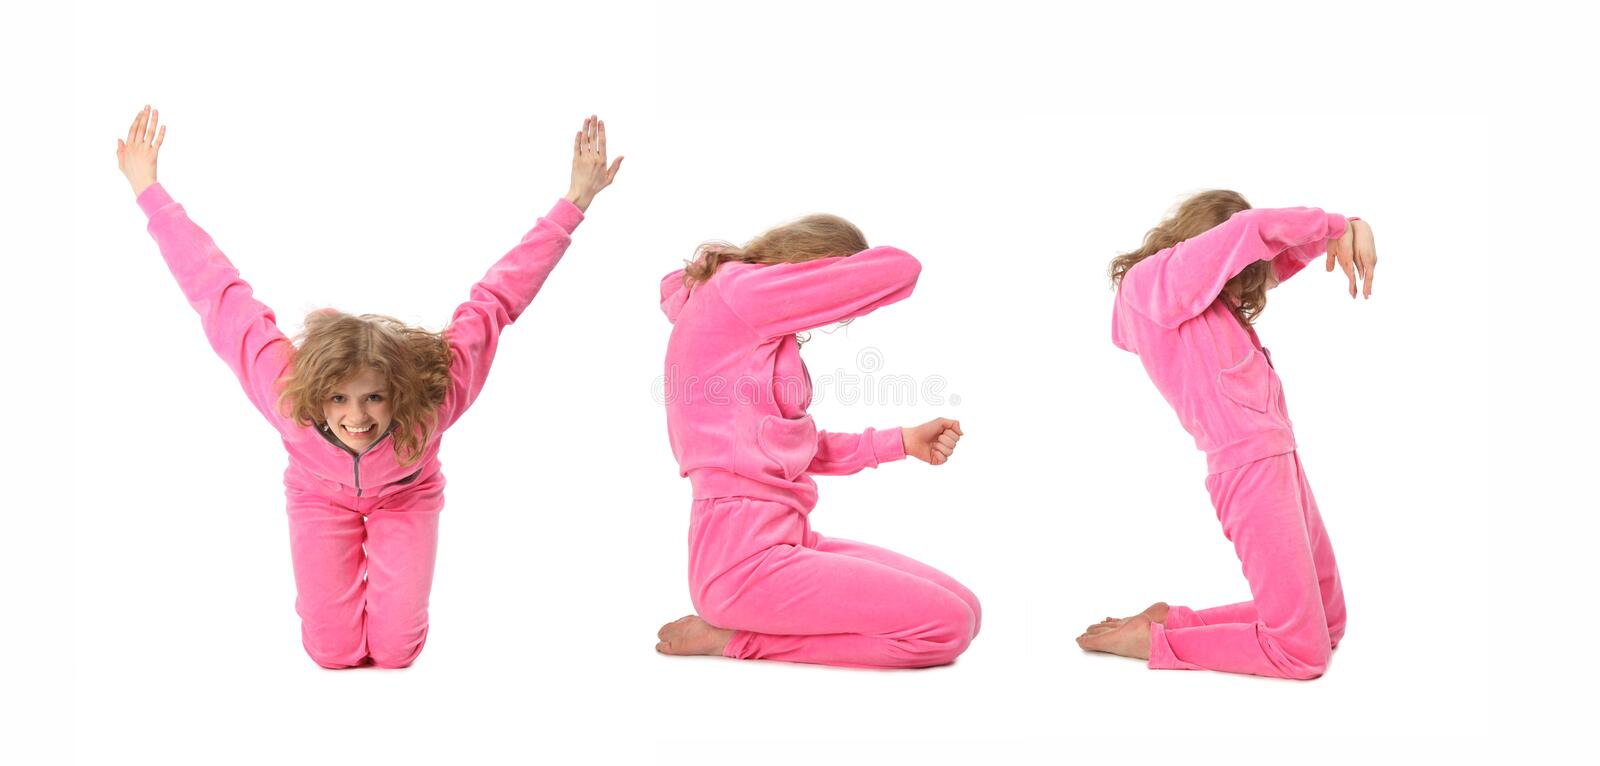 Girl in pink clothes making word YES royalty free stock images